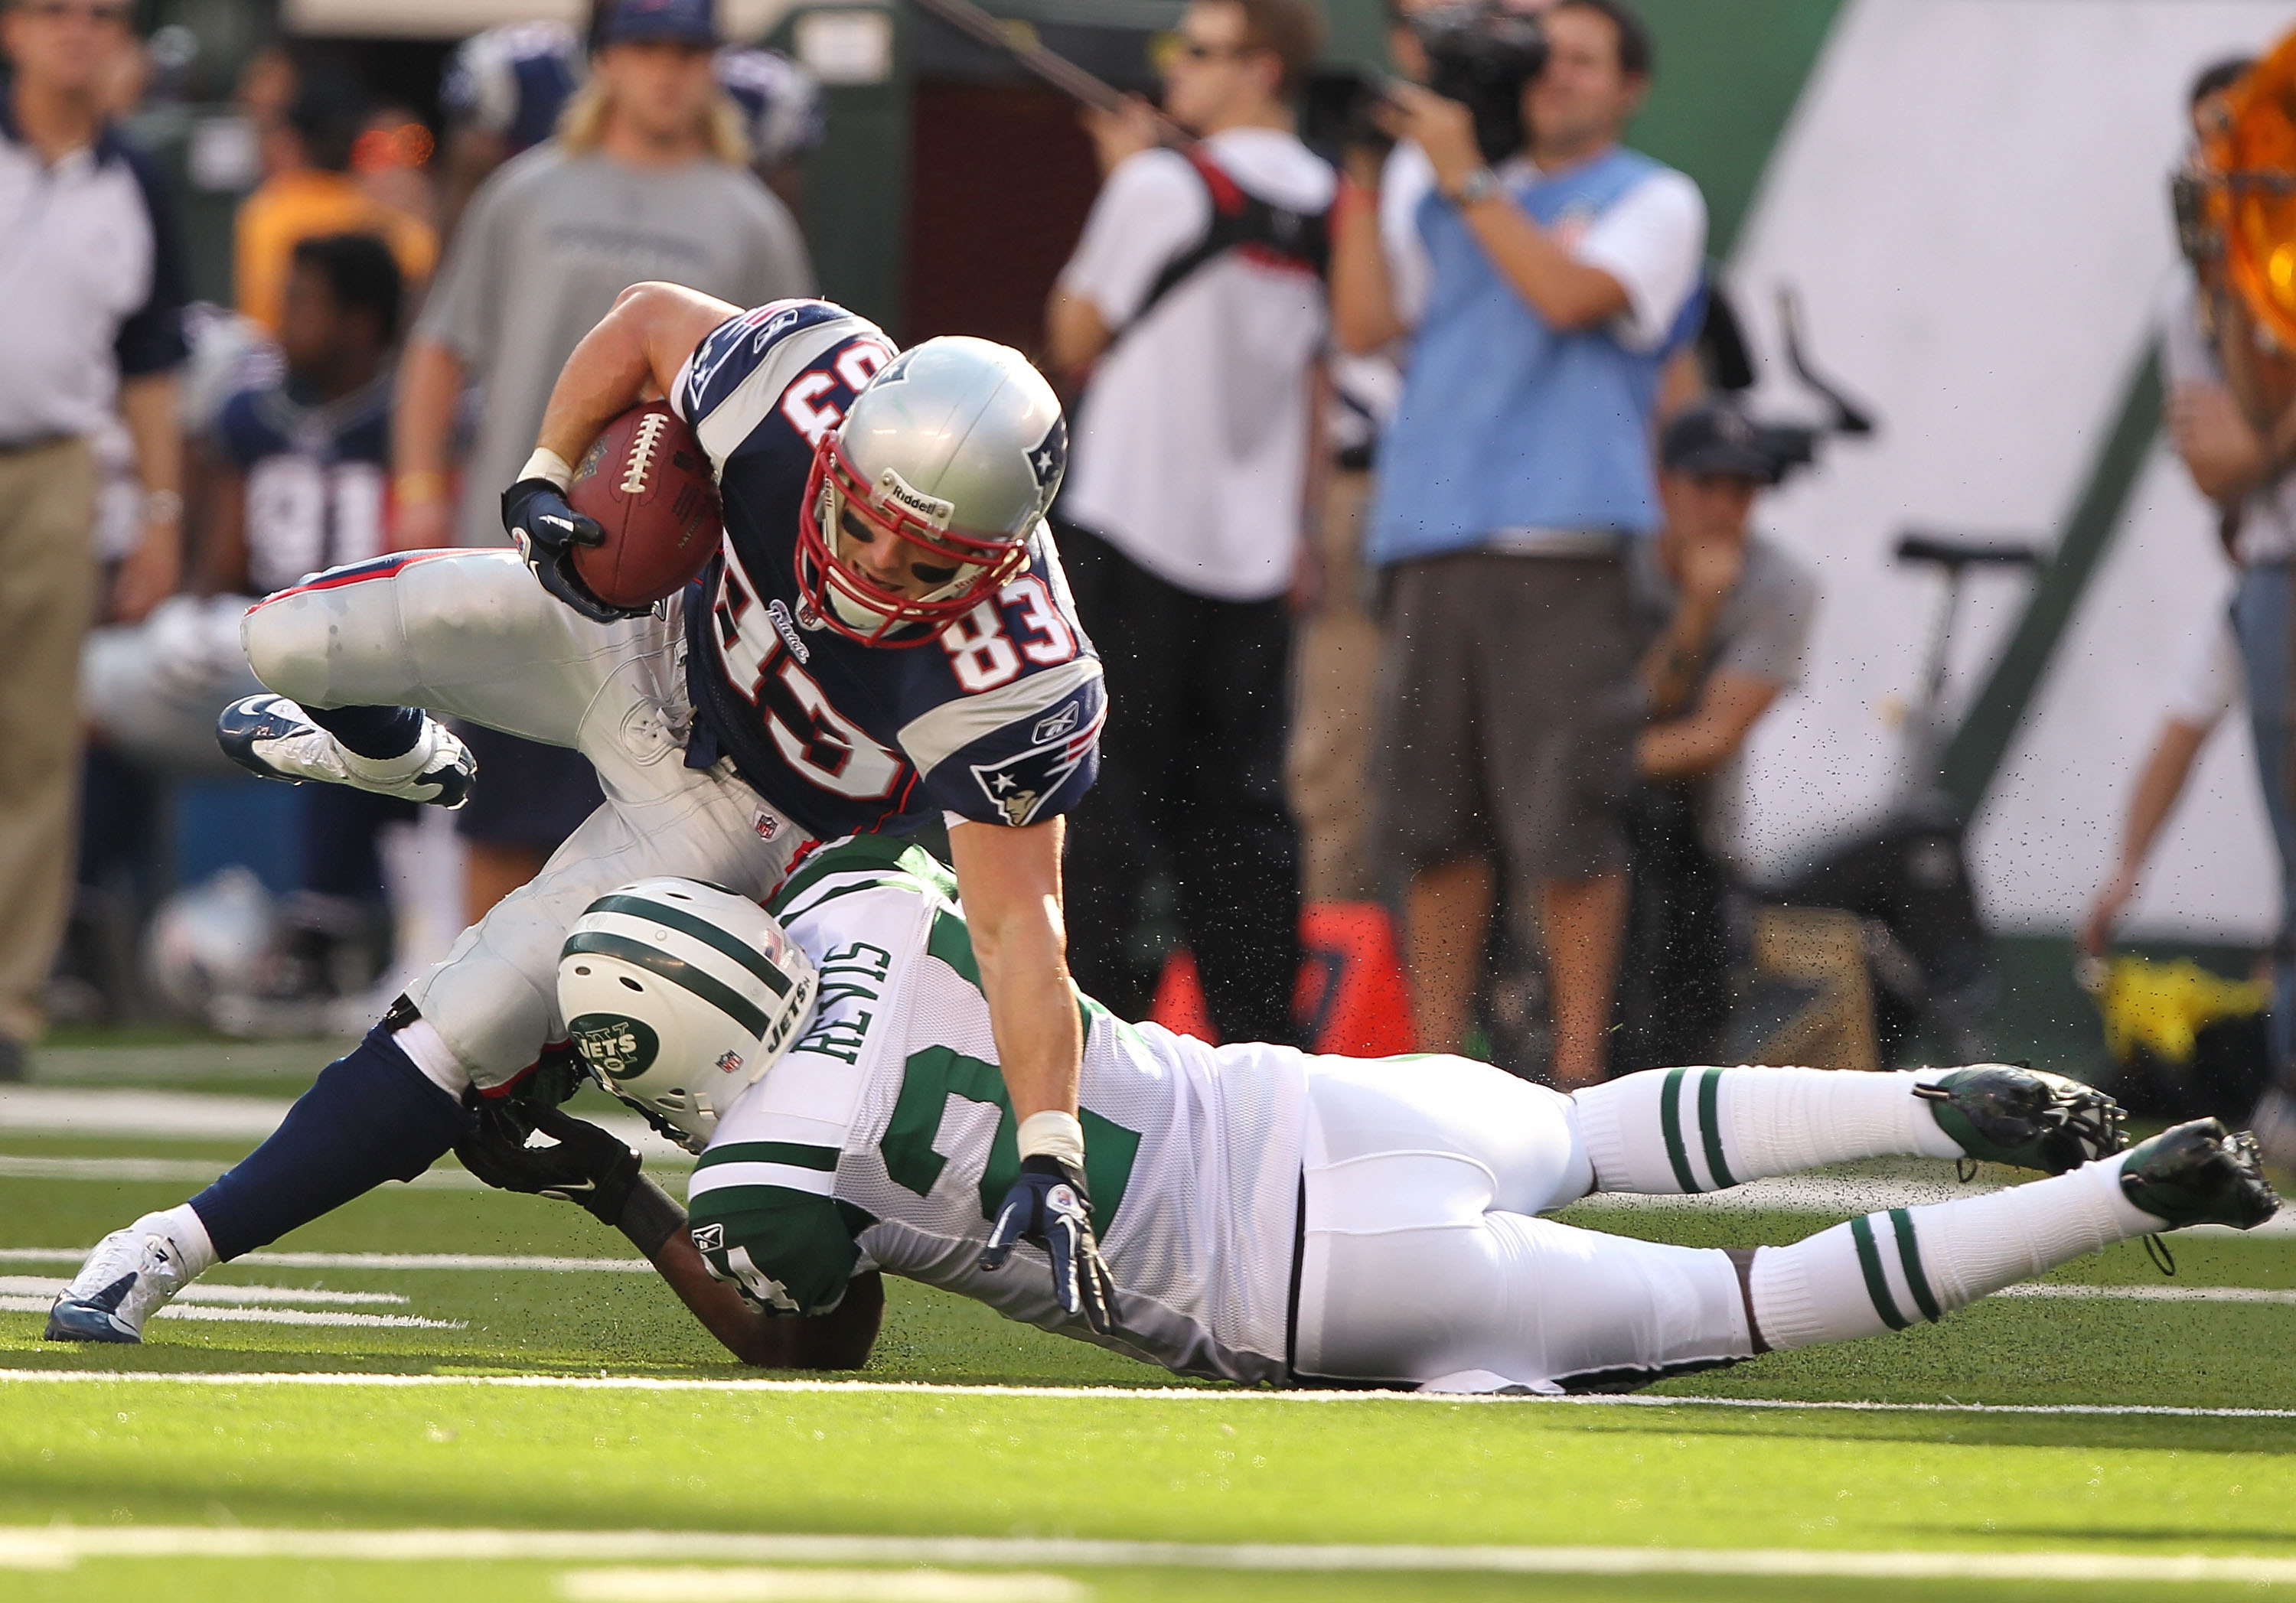 EAST RUTHERFORD, NJ - SEPTEMBER 19:  Darrelle Revis #24 of the New York Jets tackles Wes Welker #83 of the New England Patriots during their  game on September 19, 2010 at the New Meadowlands Stadium  in East Rutherford, New Jersey.  (Photo by Al Bello/Ge